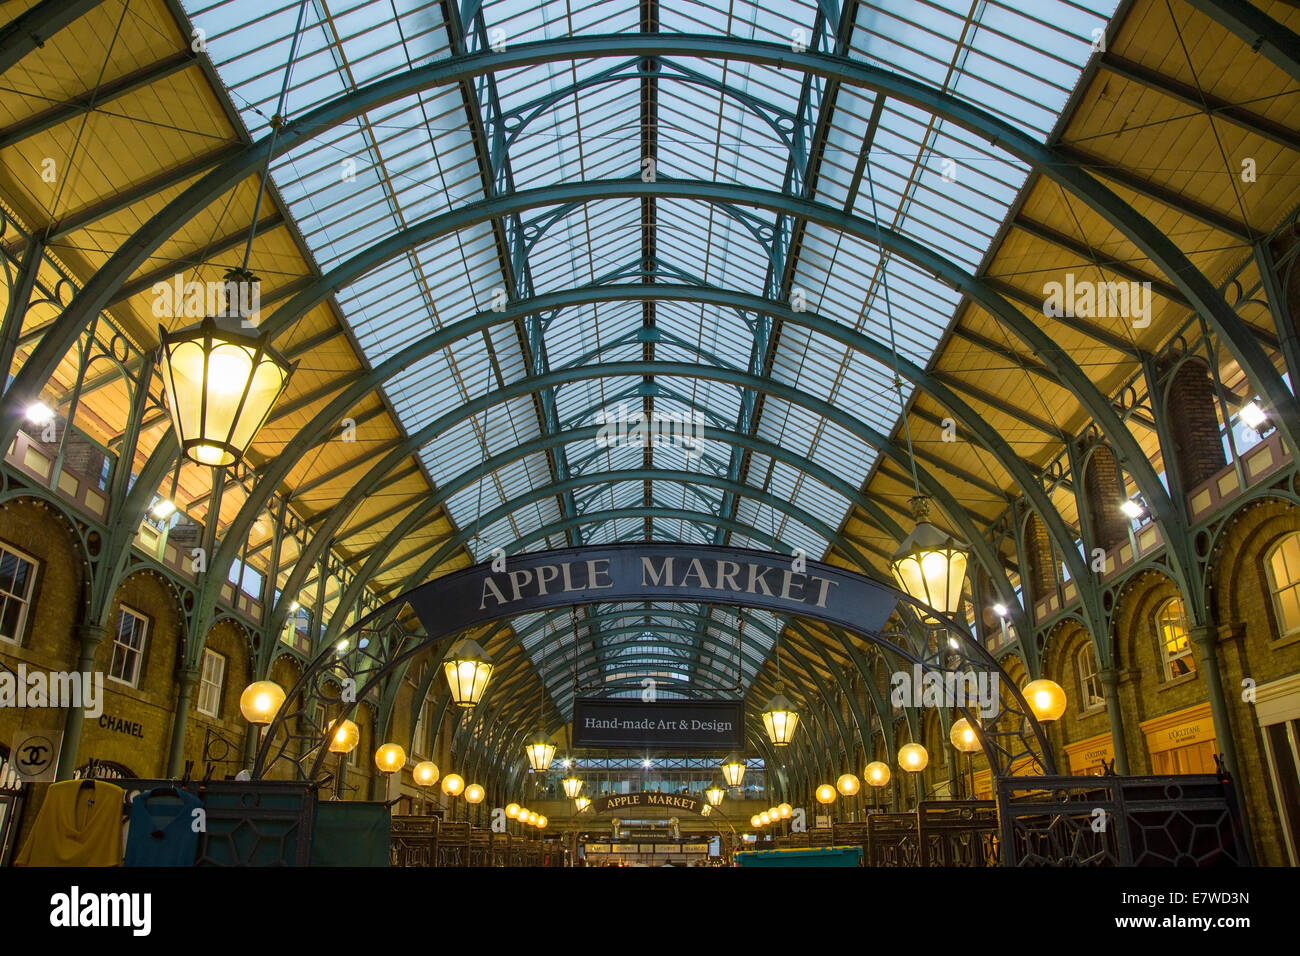 covent garden apple market london stockfotos covent garden apple market london bilder alamy. Black Bedroom Furniture Sets. Home Design Ideas